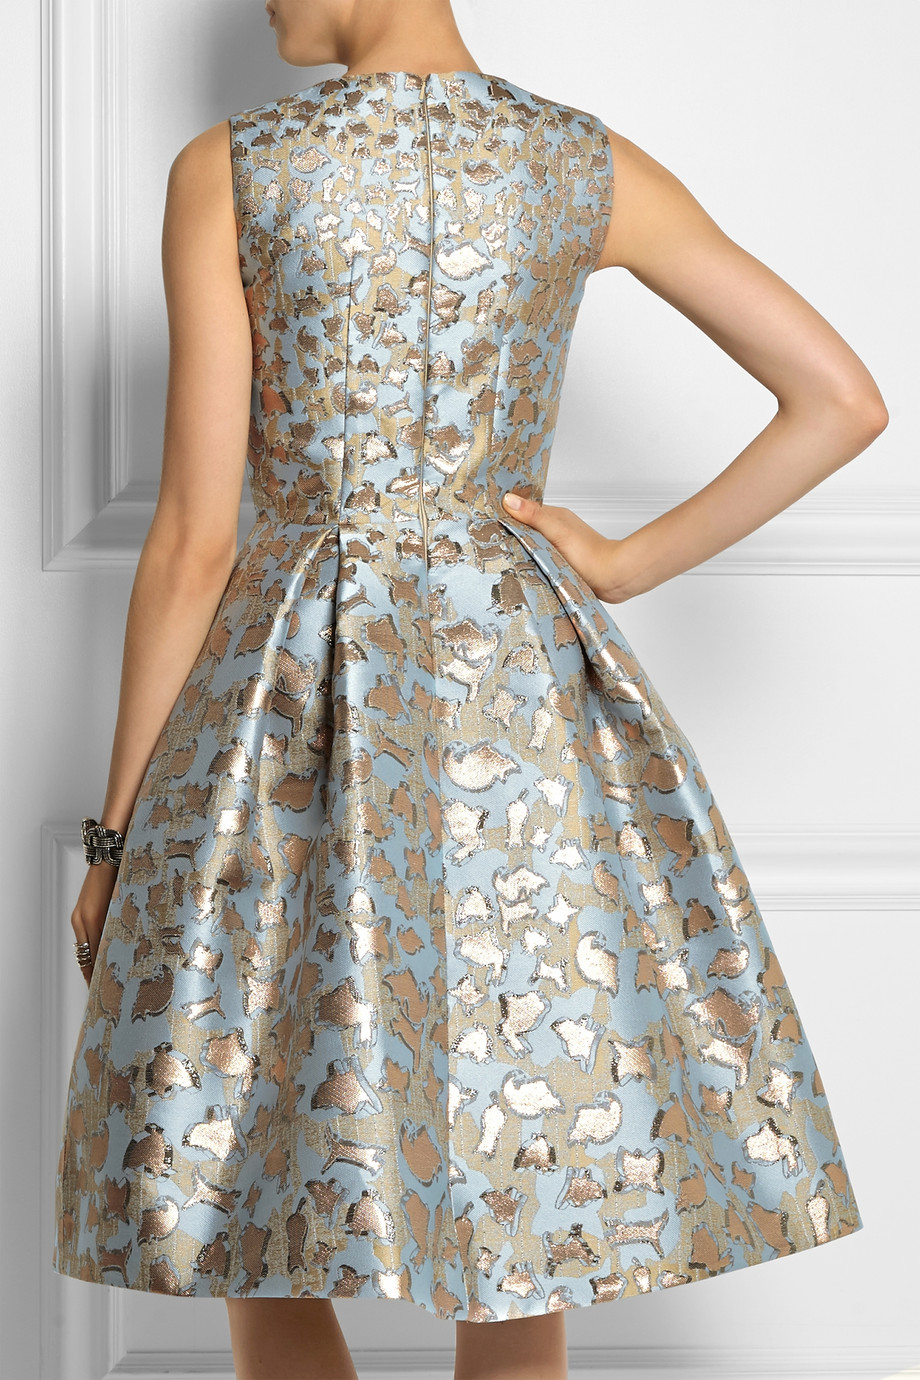 62e7d58520c Mary Katrantzou Jq Astere Metallic Jacquard Dress in Blue - Lyst